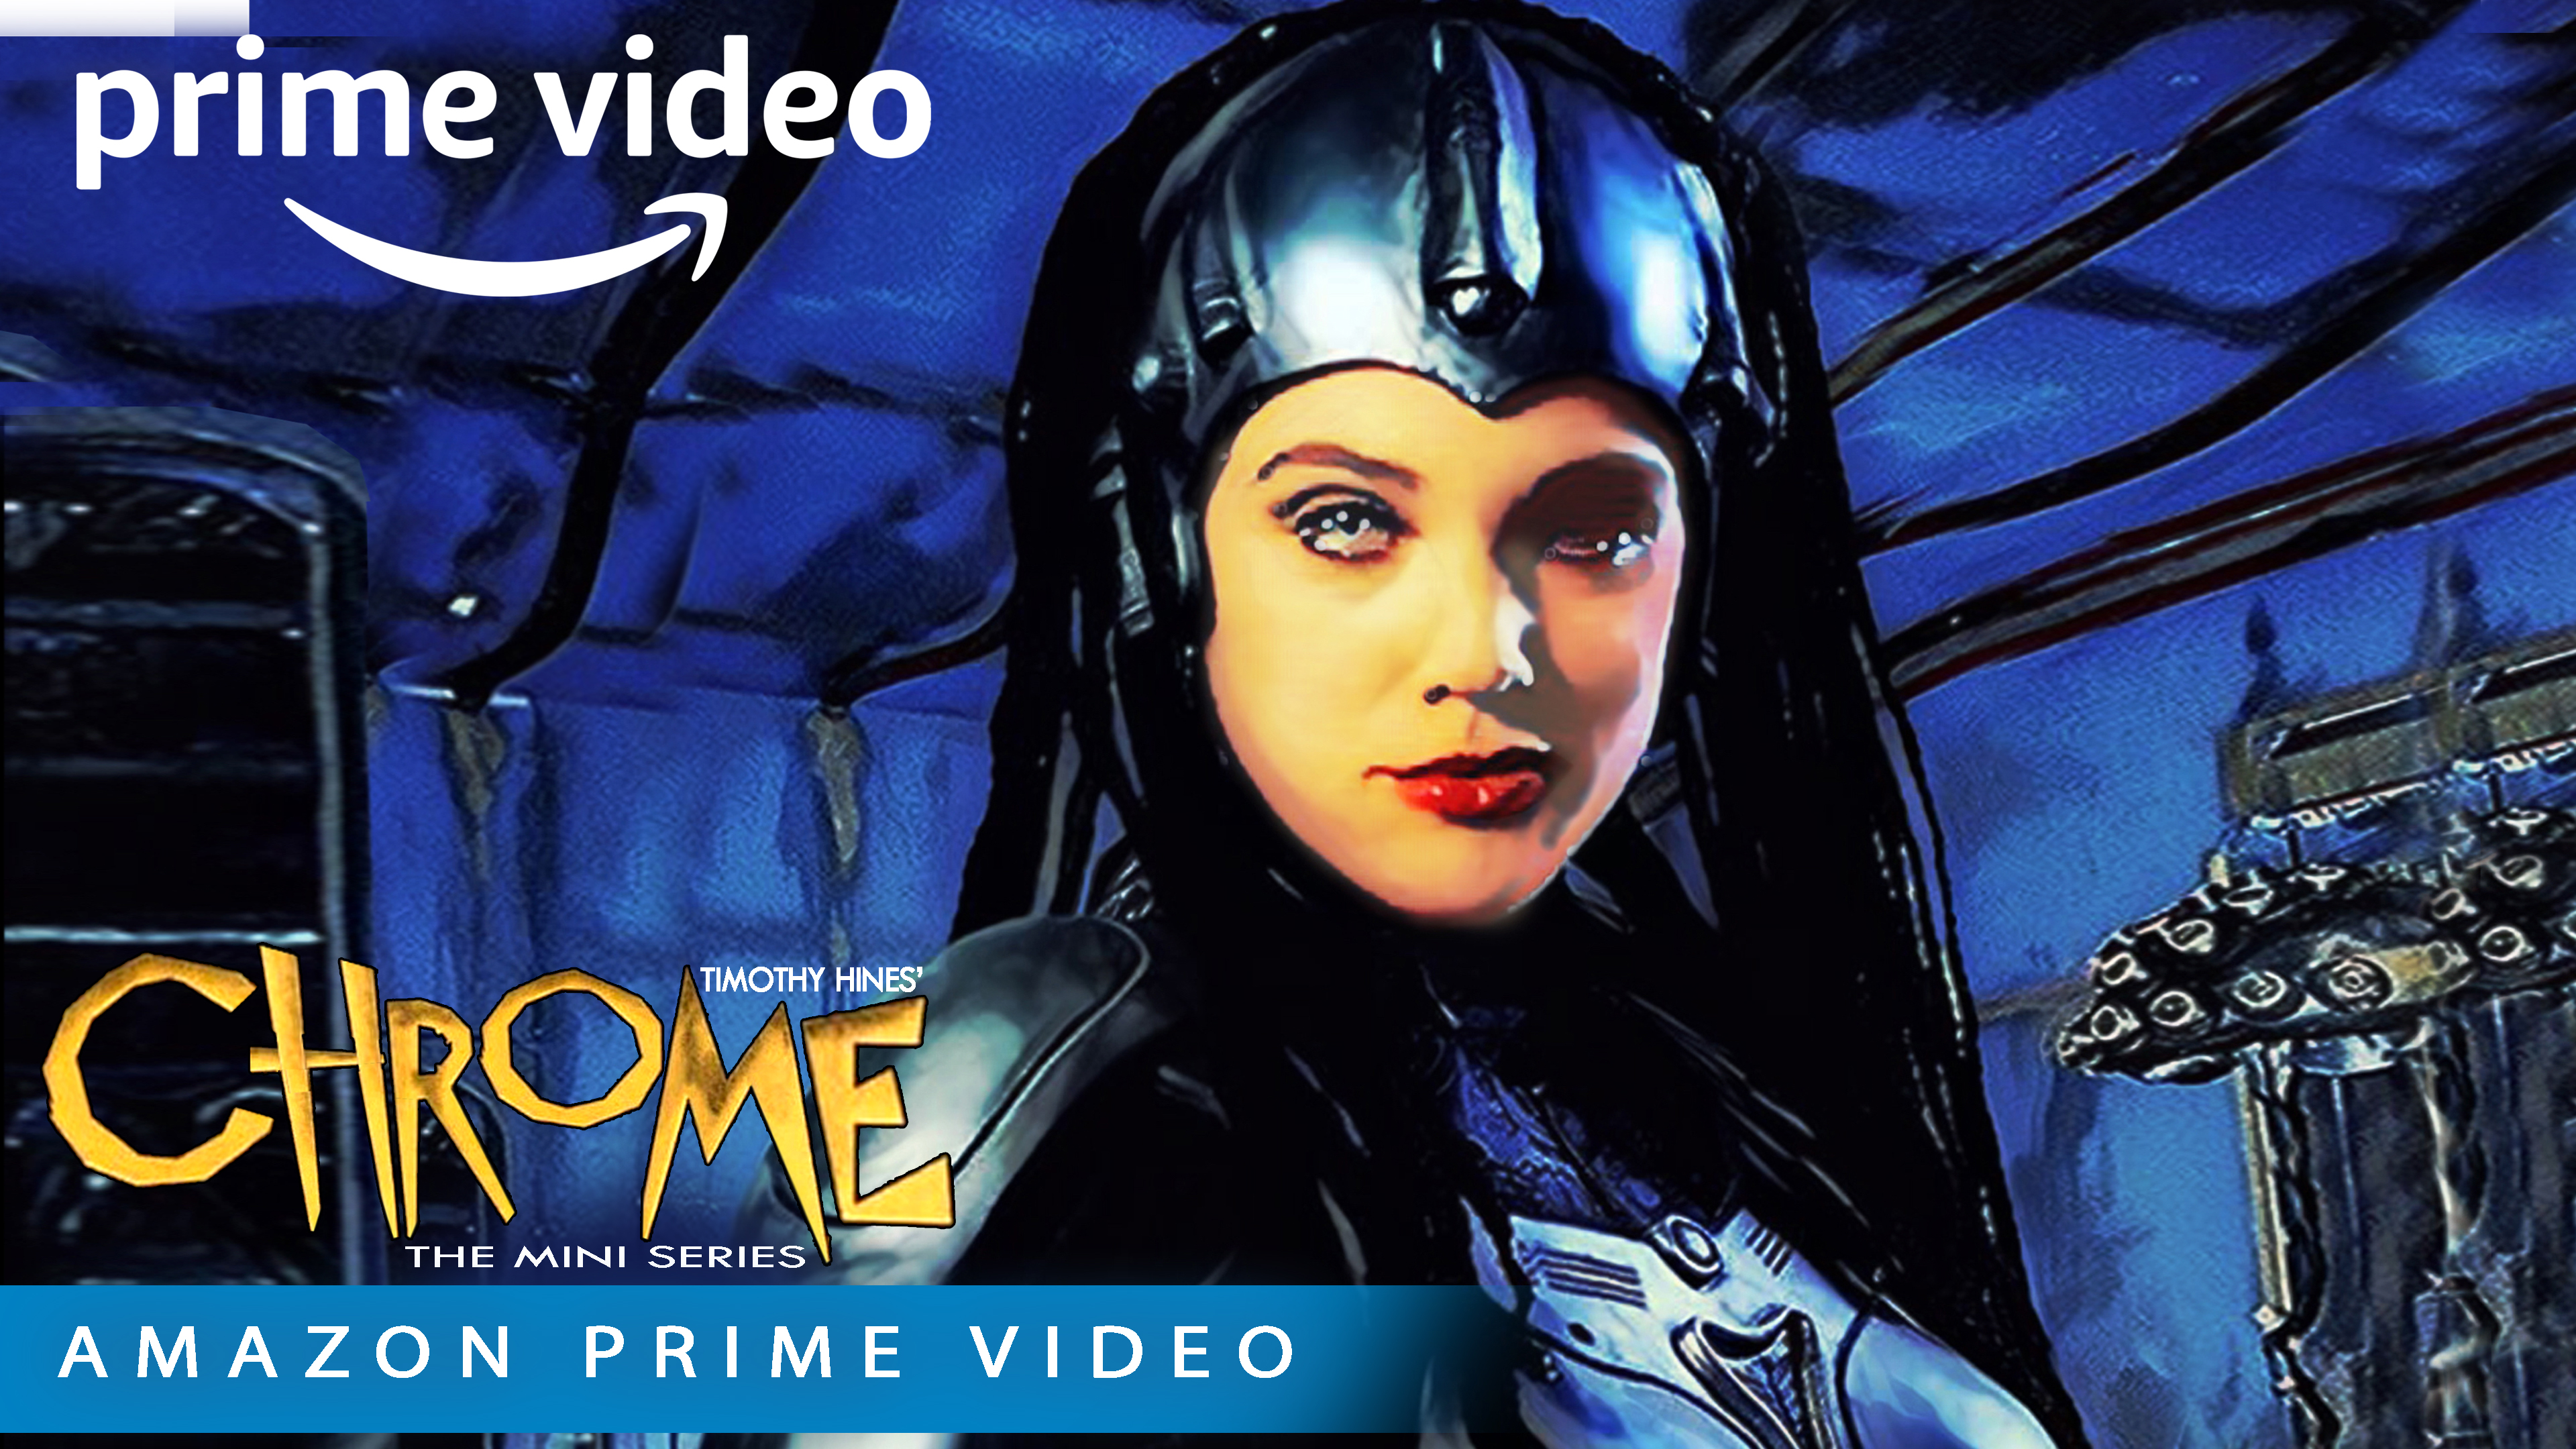 Watch The Trailer - Hit Chrome The Series Innovative Golden Age Retro Style Superhero Thriller on Amazon Prime